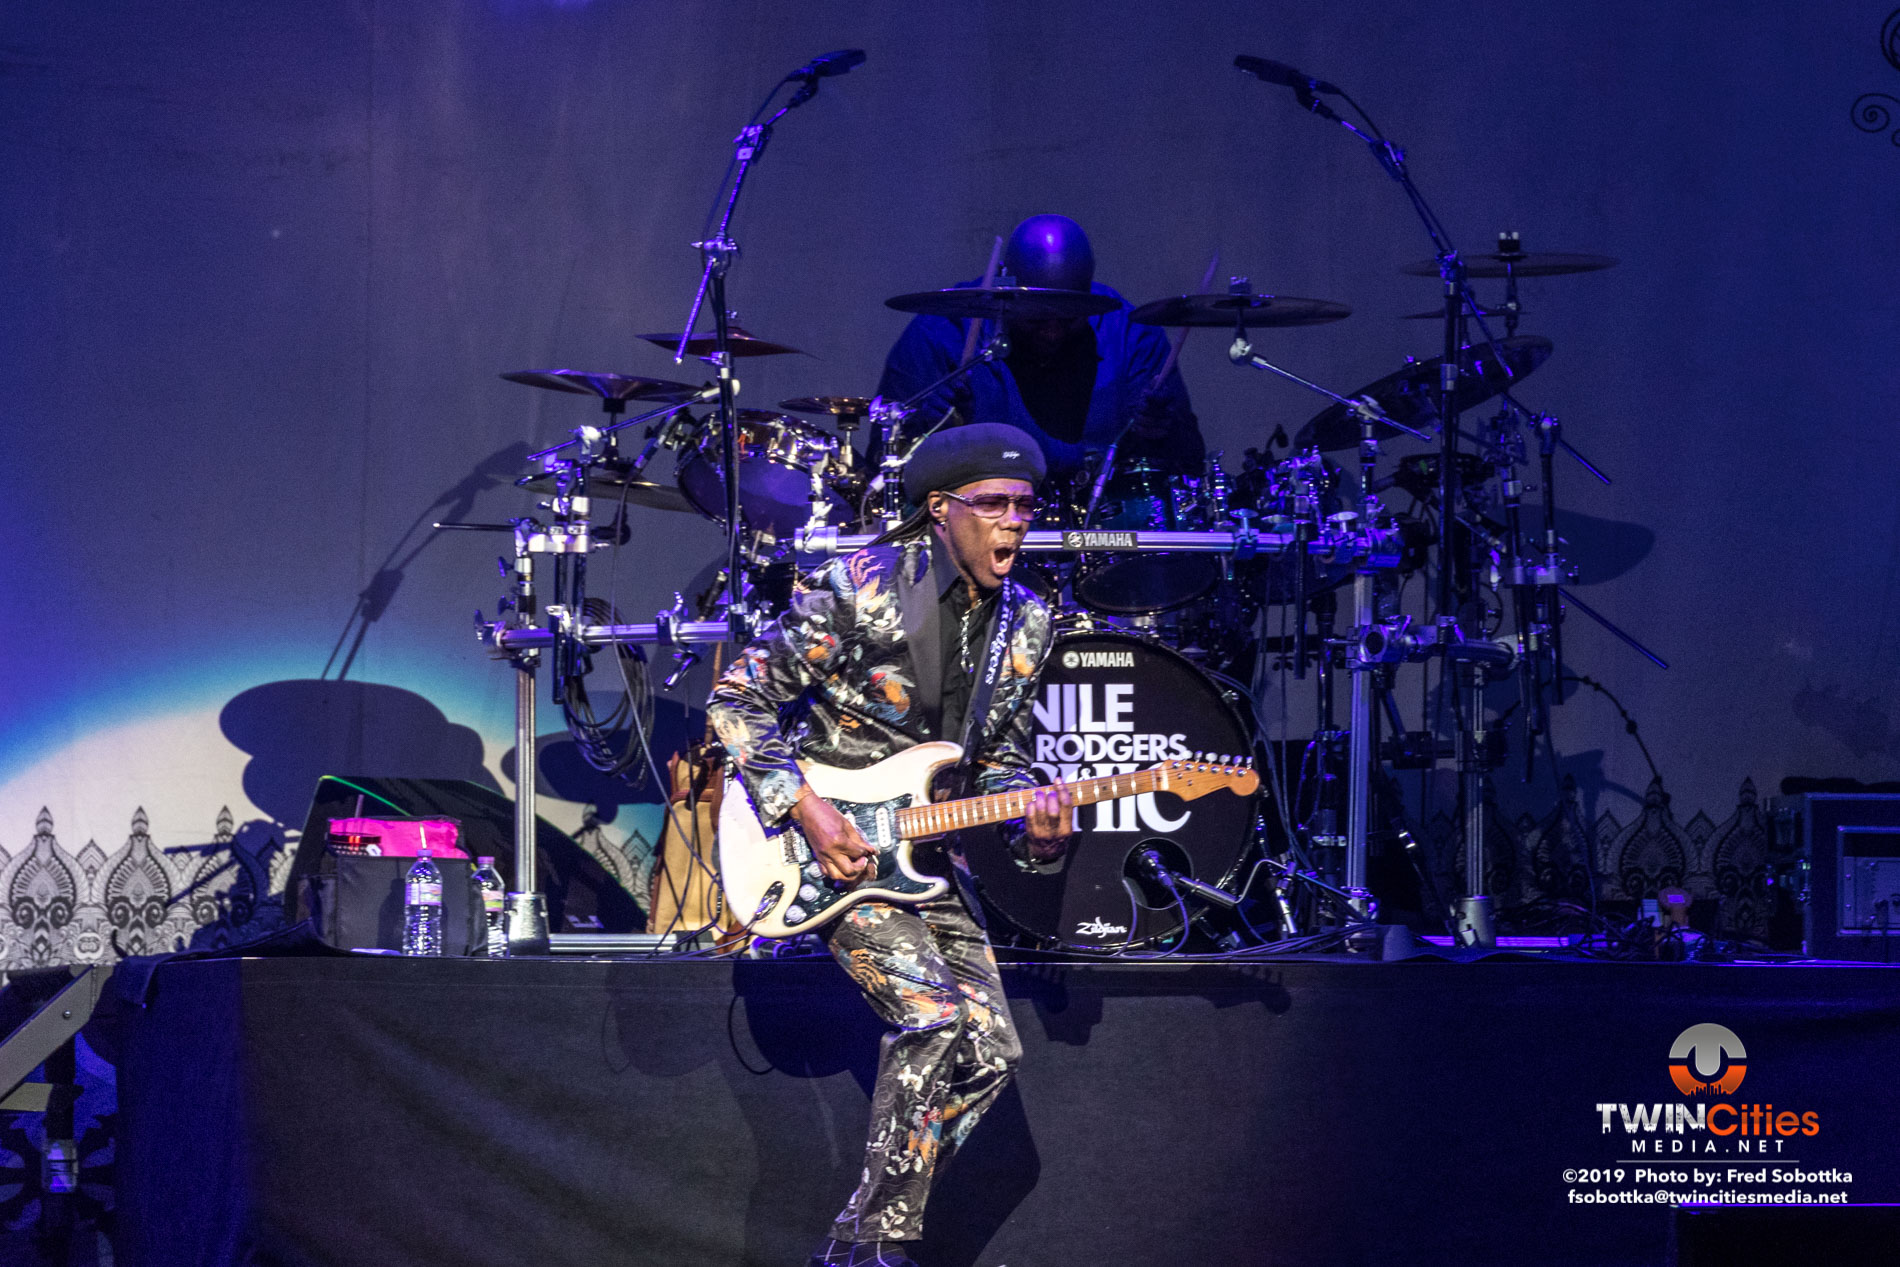 Nile-Rodgers-Chic-09